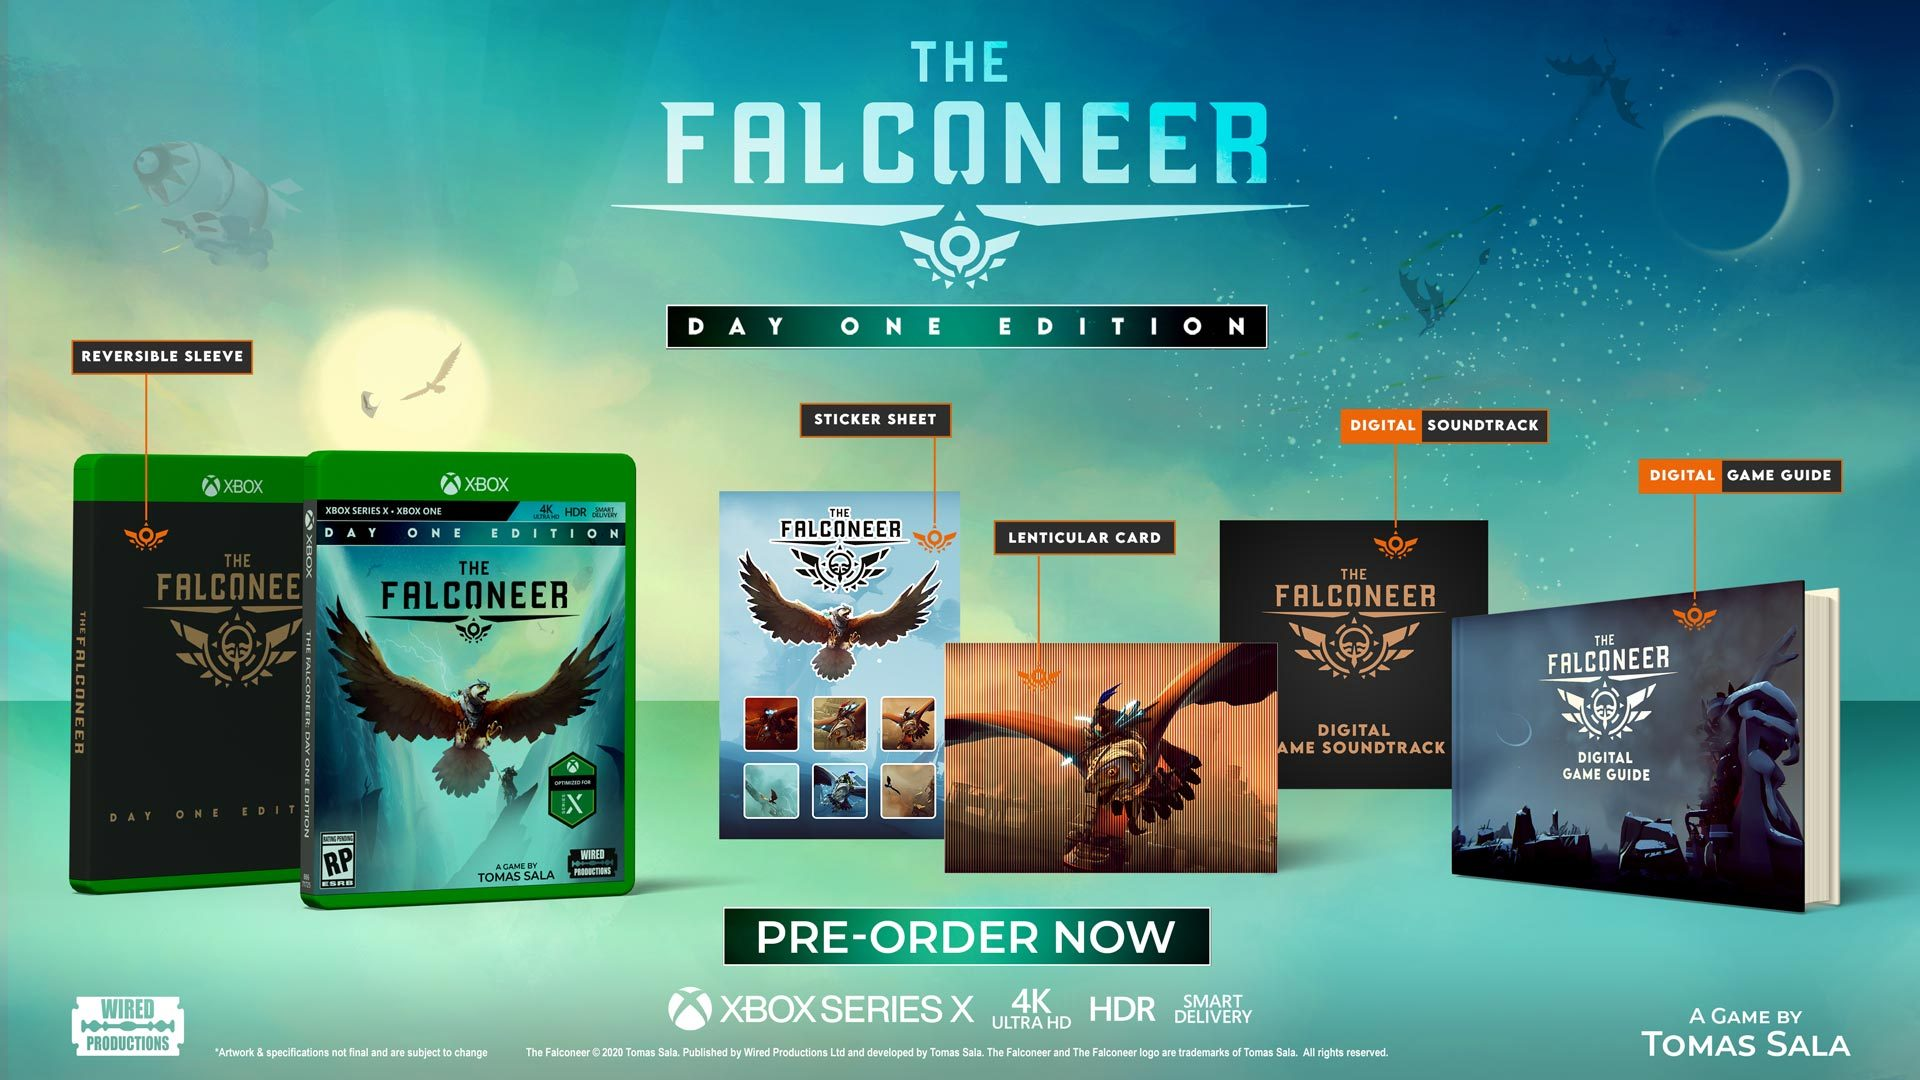 The Falconeer - Day One Edition